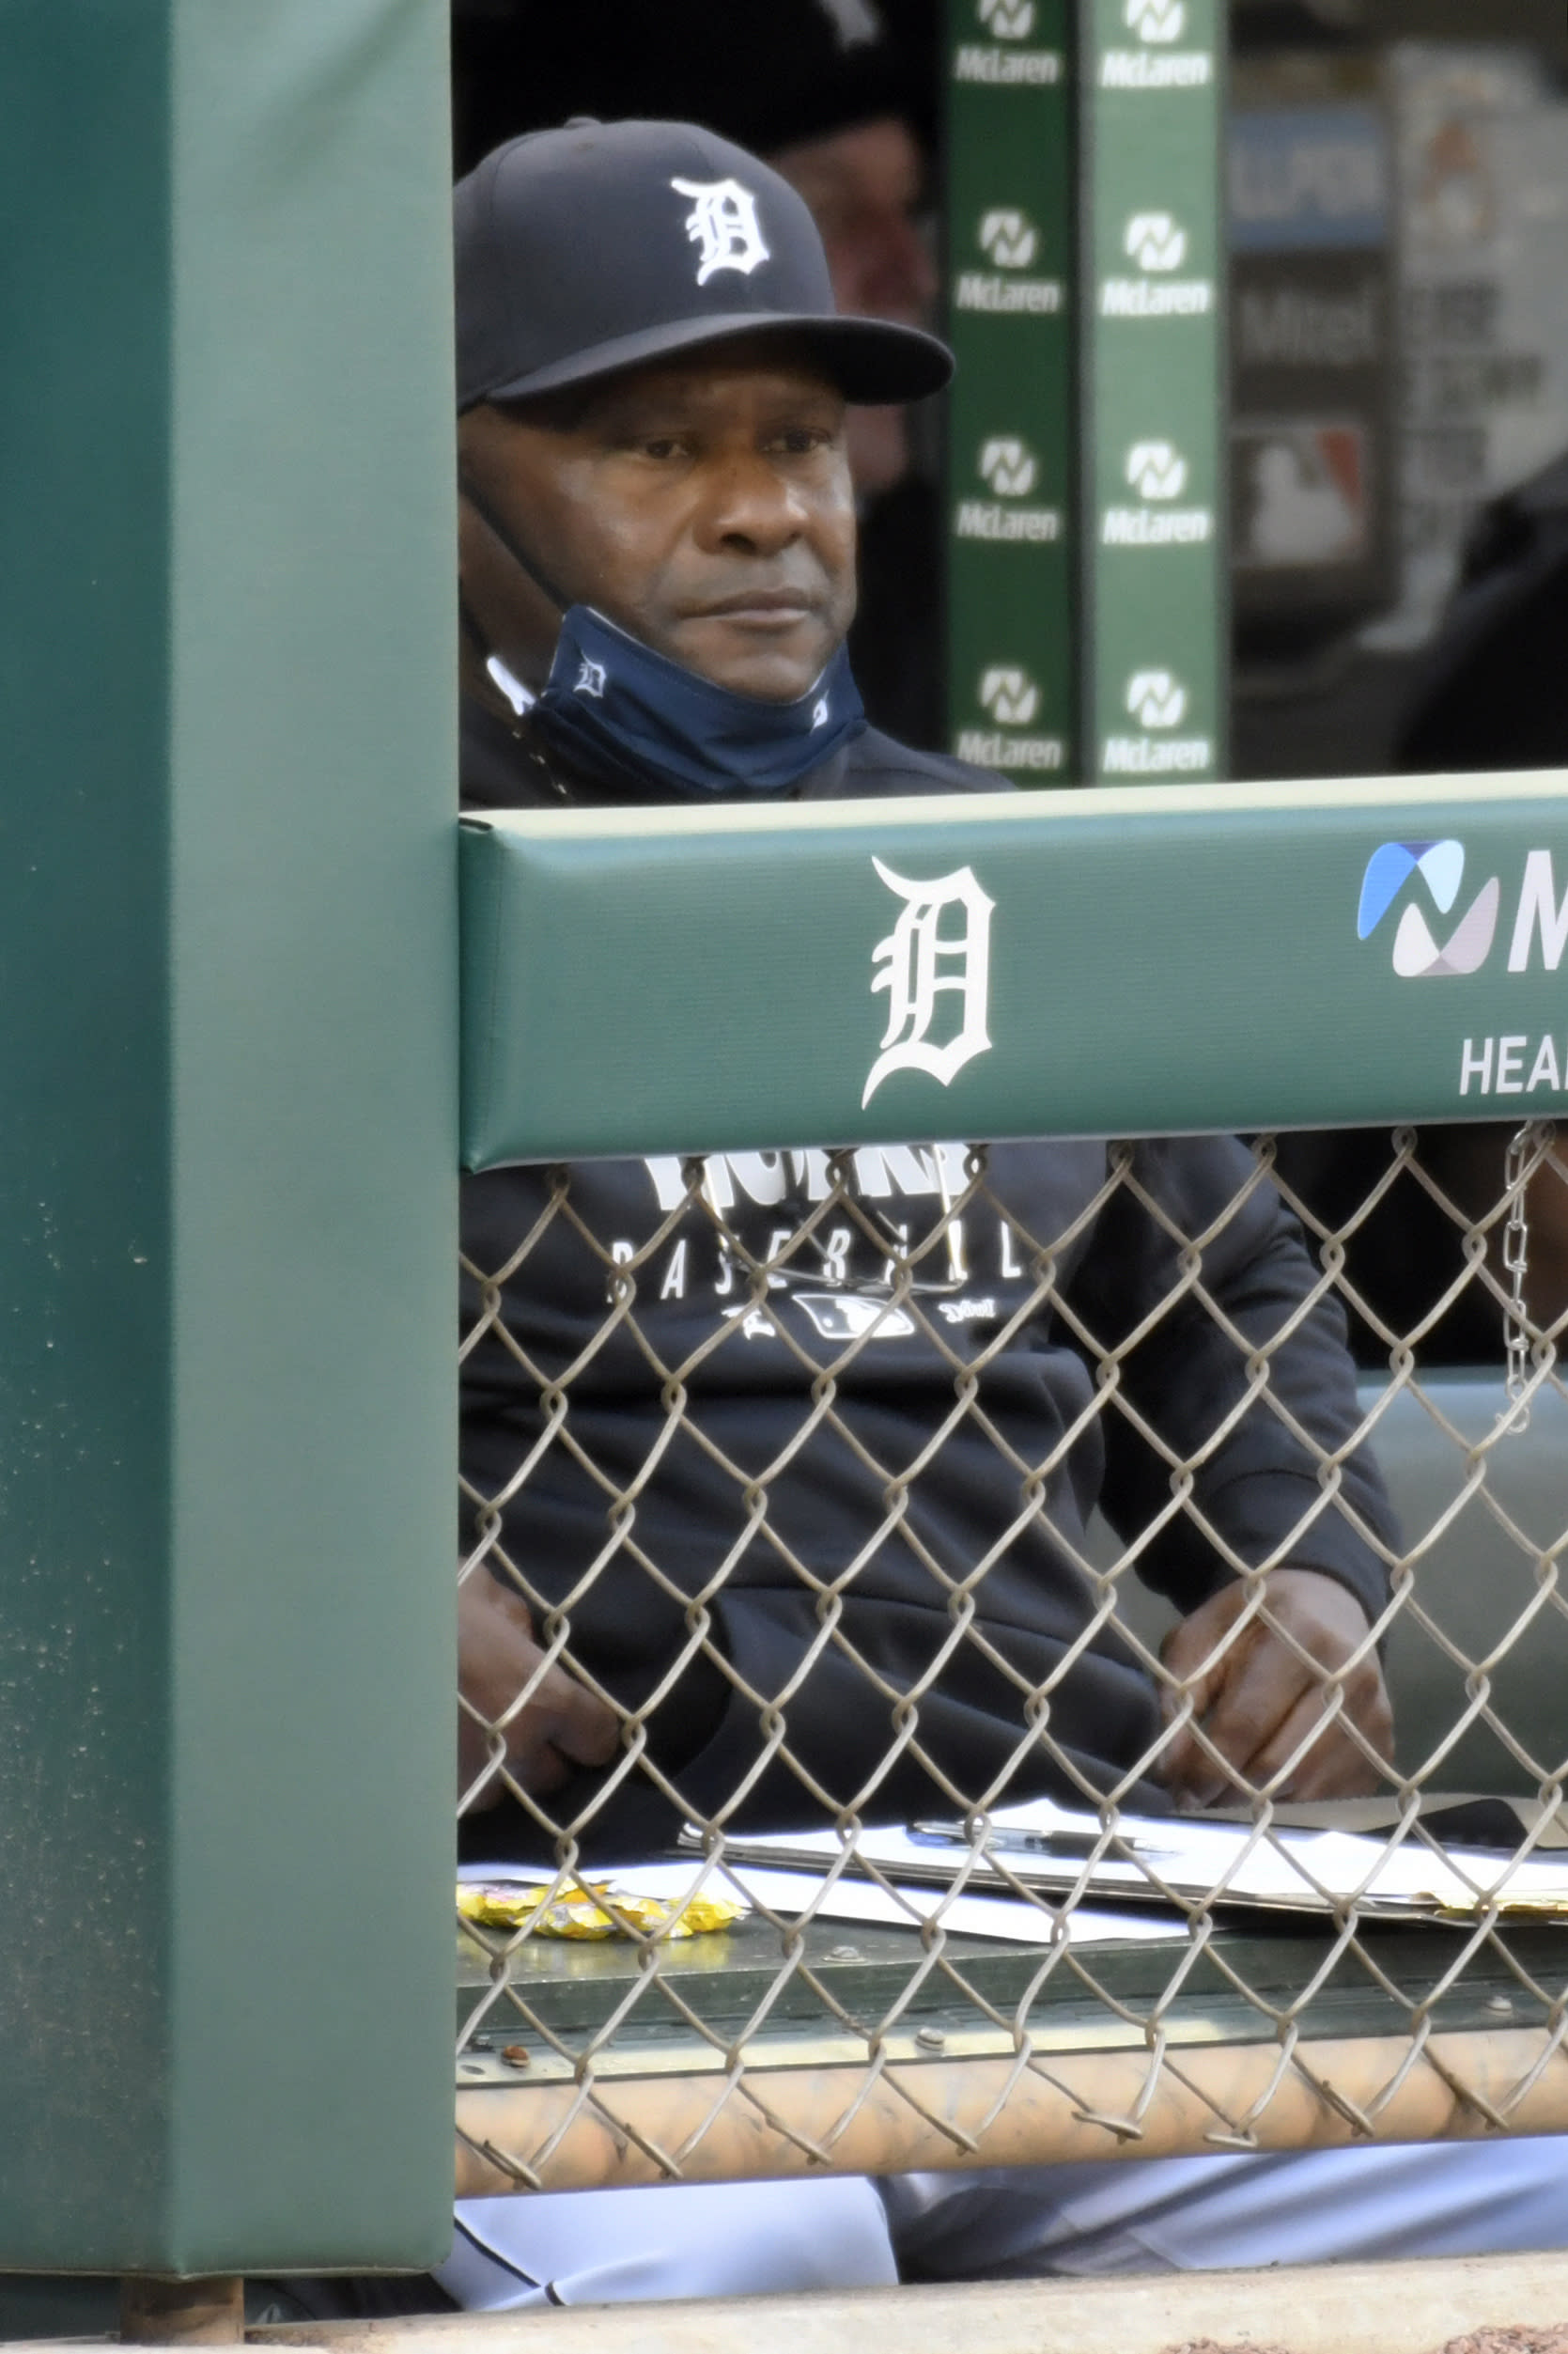 Detroit Tigers manager Lloyd McClendon watches his team play against the Cleveland Indians in the first inning of a baseball game, Saturday, Sept. 19, 2020, in Detroit. McClendon is now the manager of the Tigers after Ron Gardenhire announced his retirement earlier in the day. (AP Photo/Jose Juarez)